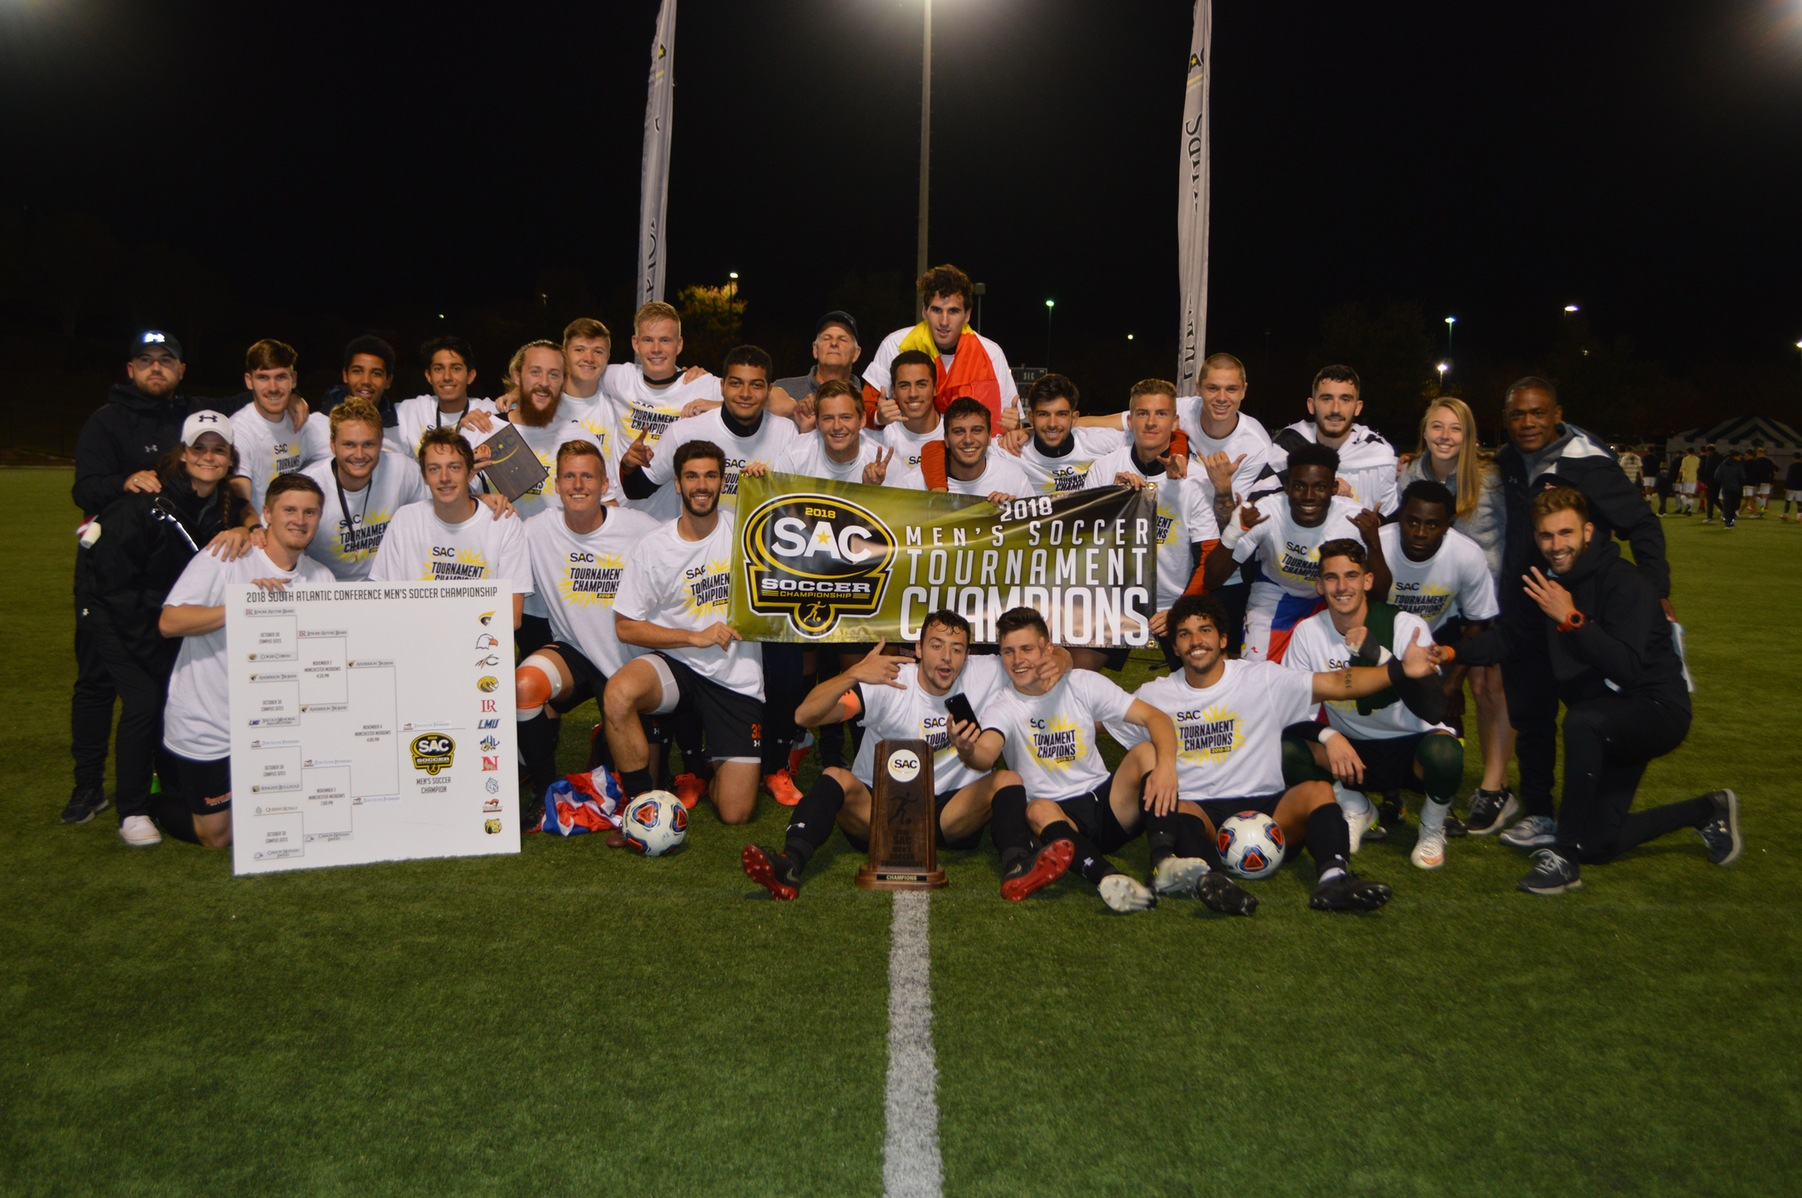 Pioneers beat Anderson 2-1 to win SAC Championship